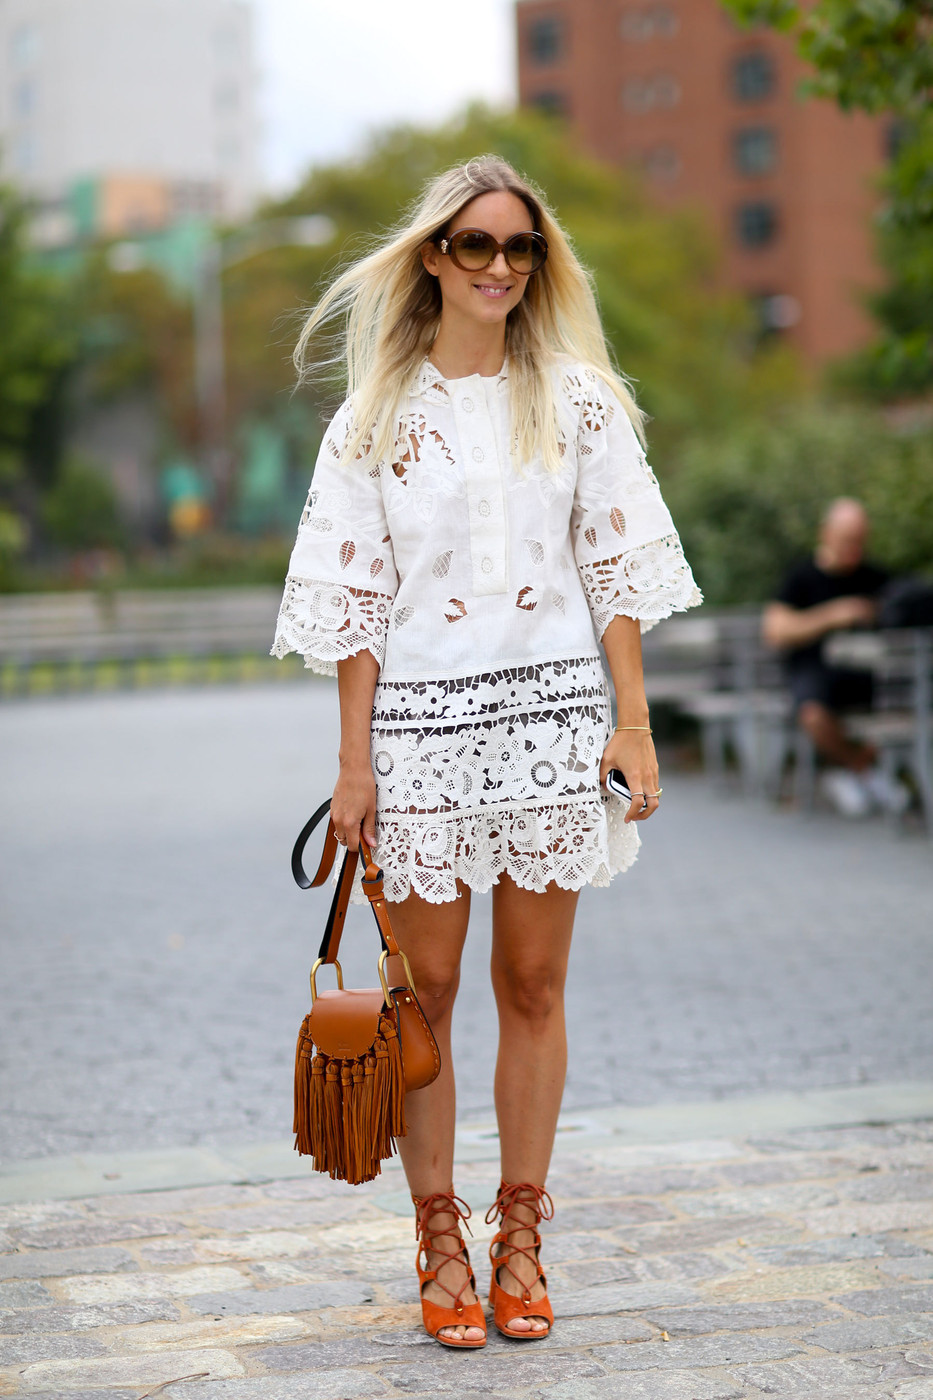 Lace Fringe The Best Street Style At New York Fashion Week Spring 2016 Livingly